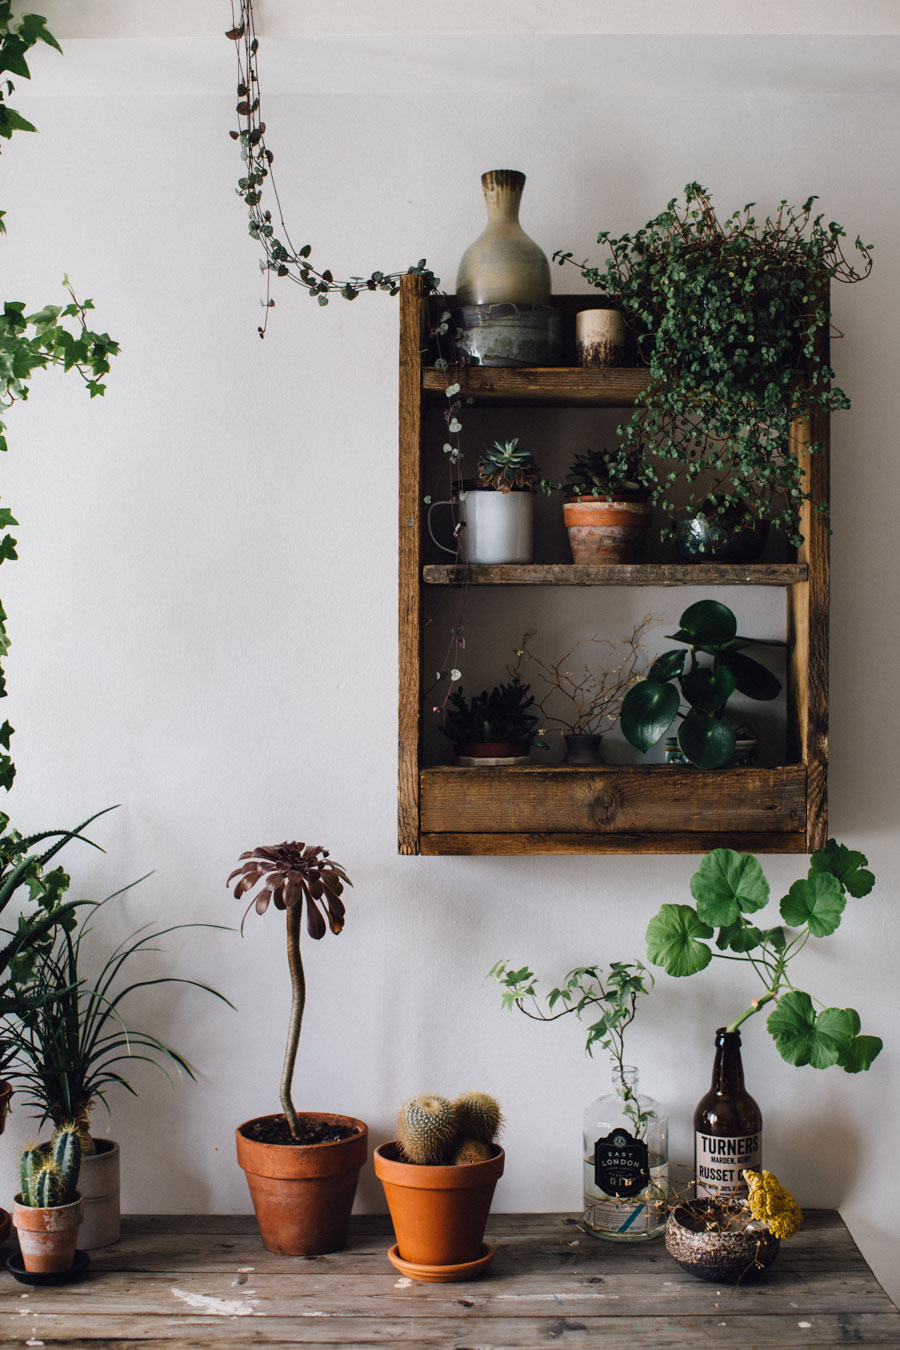 Home office with plants